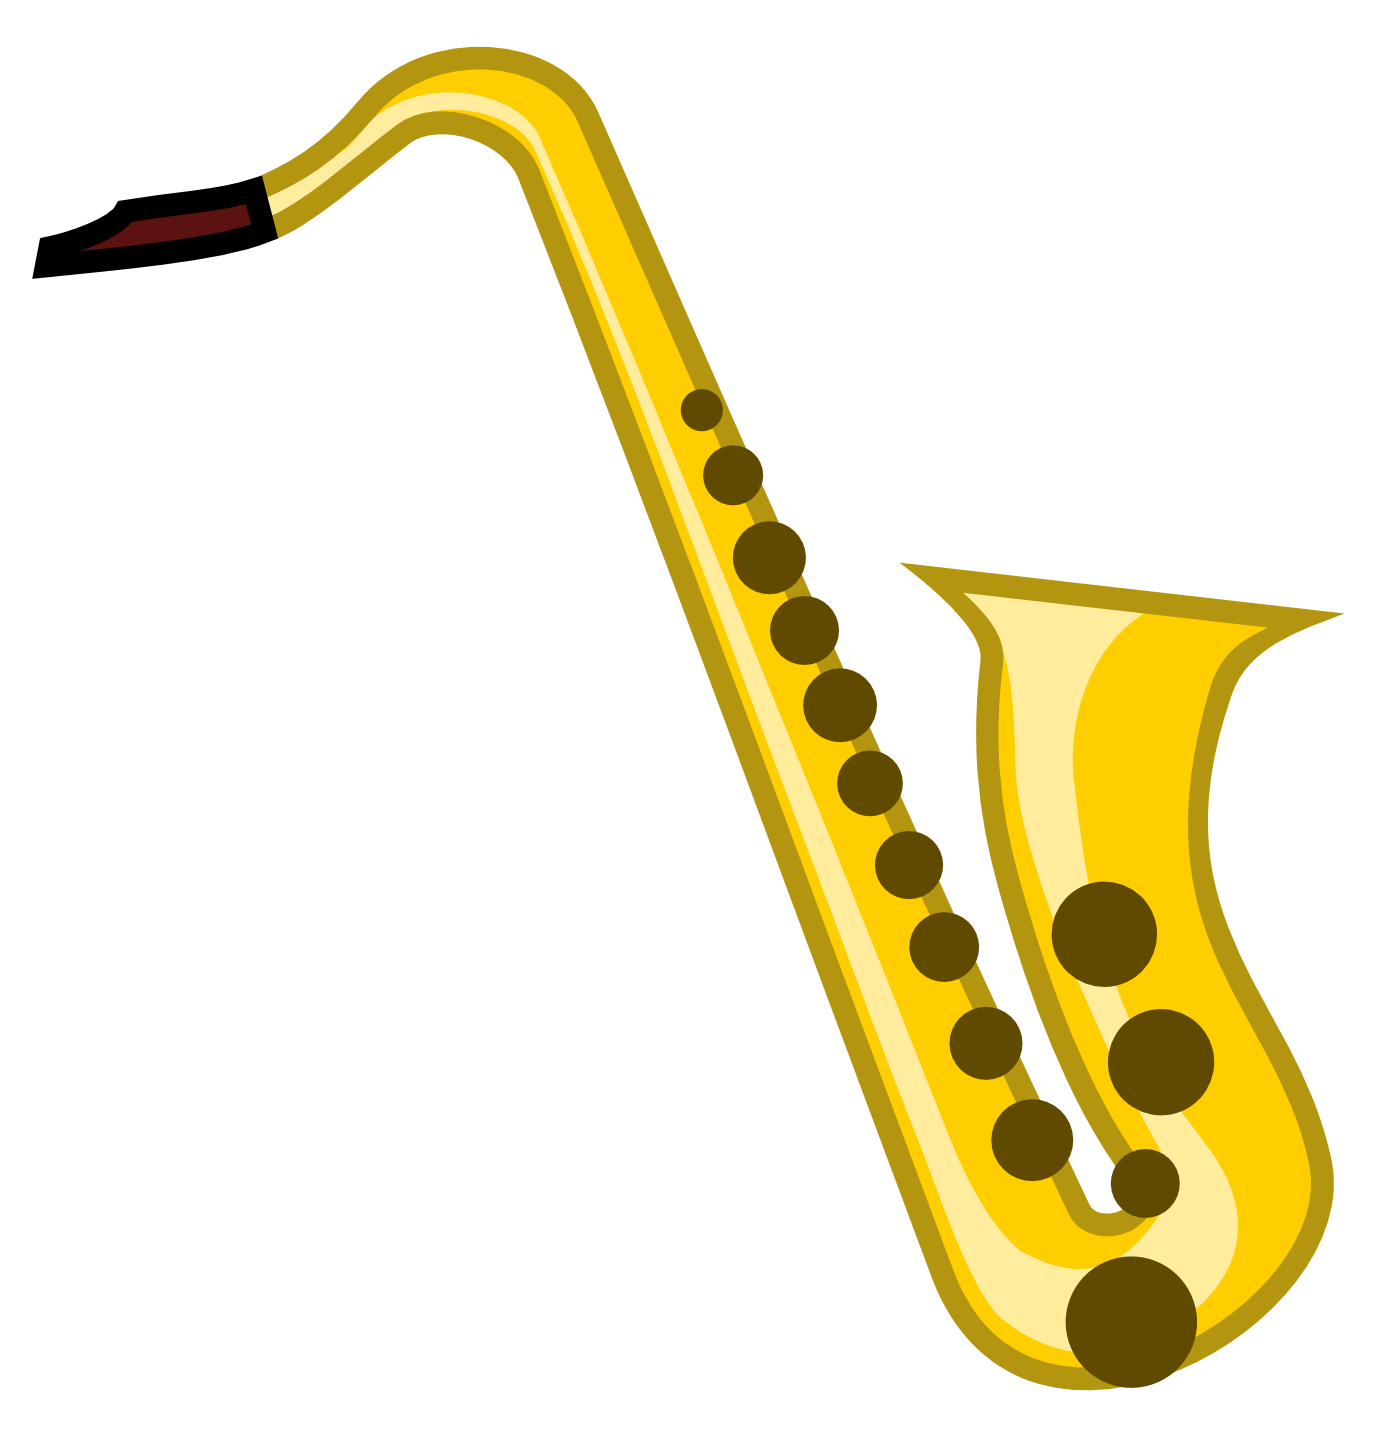 HQ Saxophone Wallpapers   File 116.54Kb